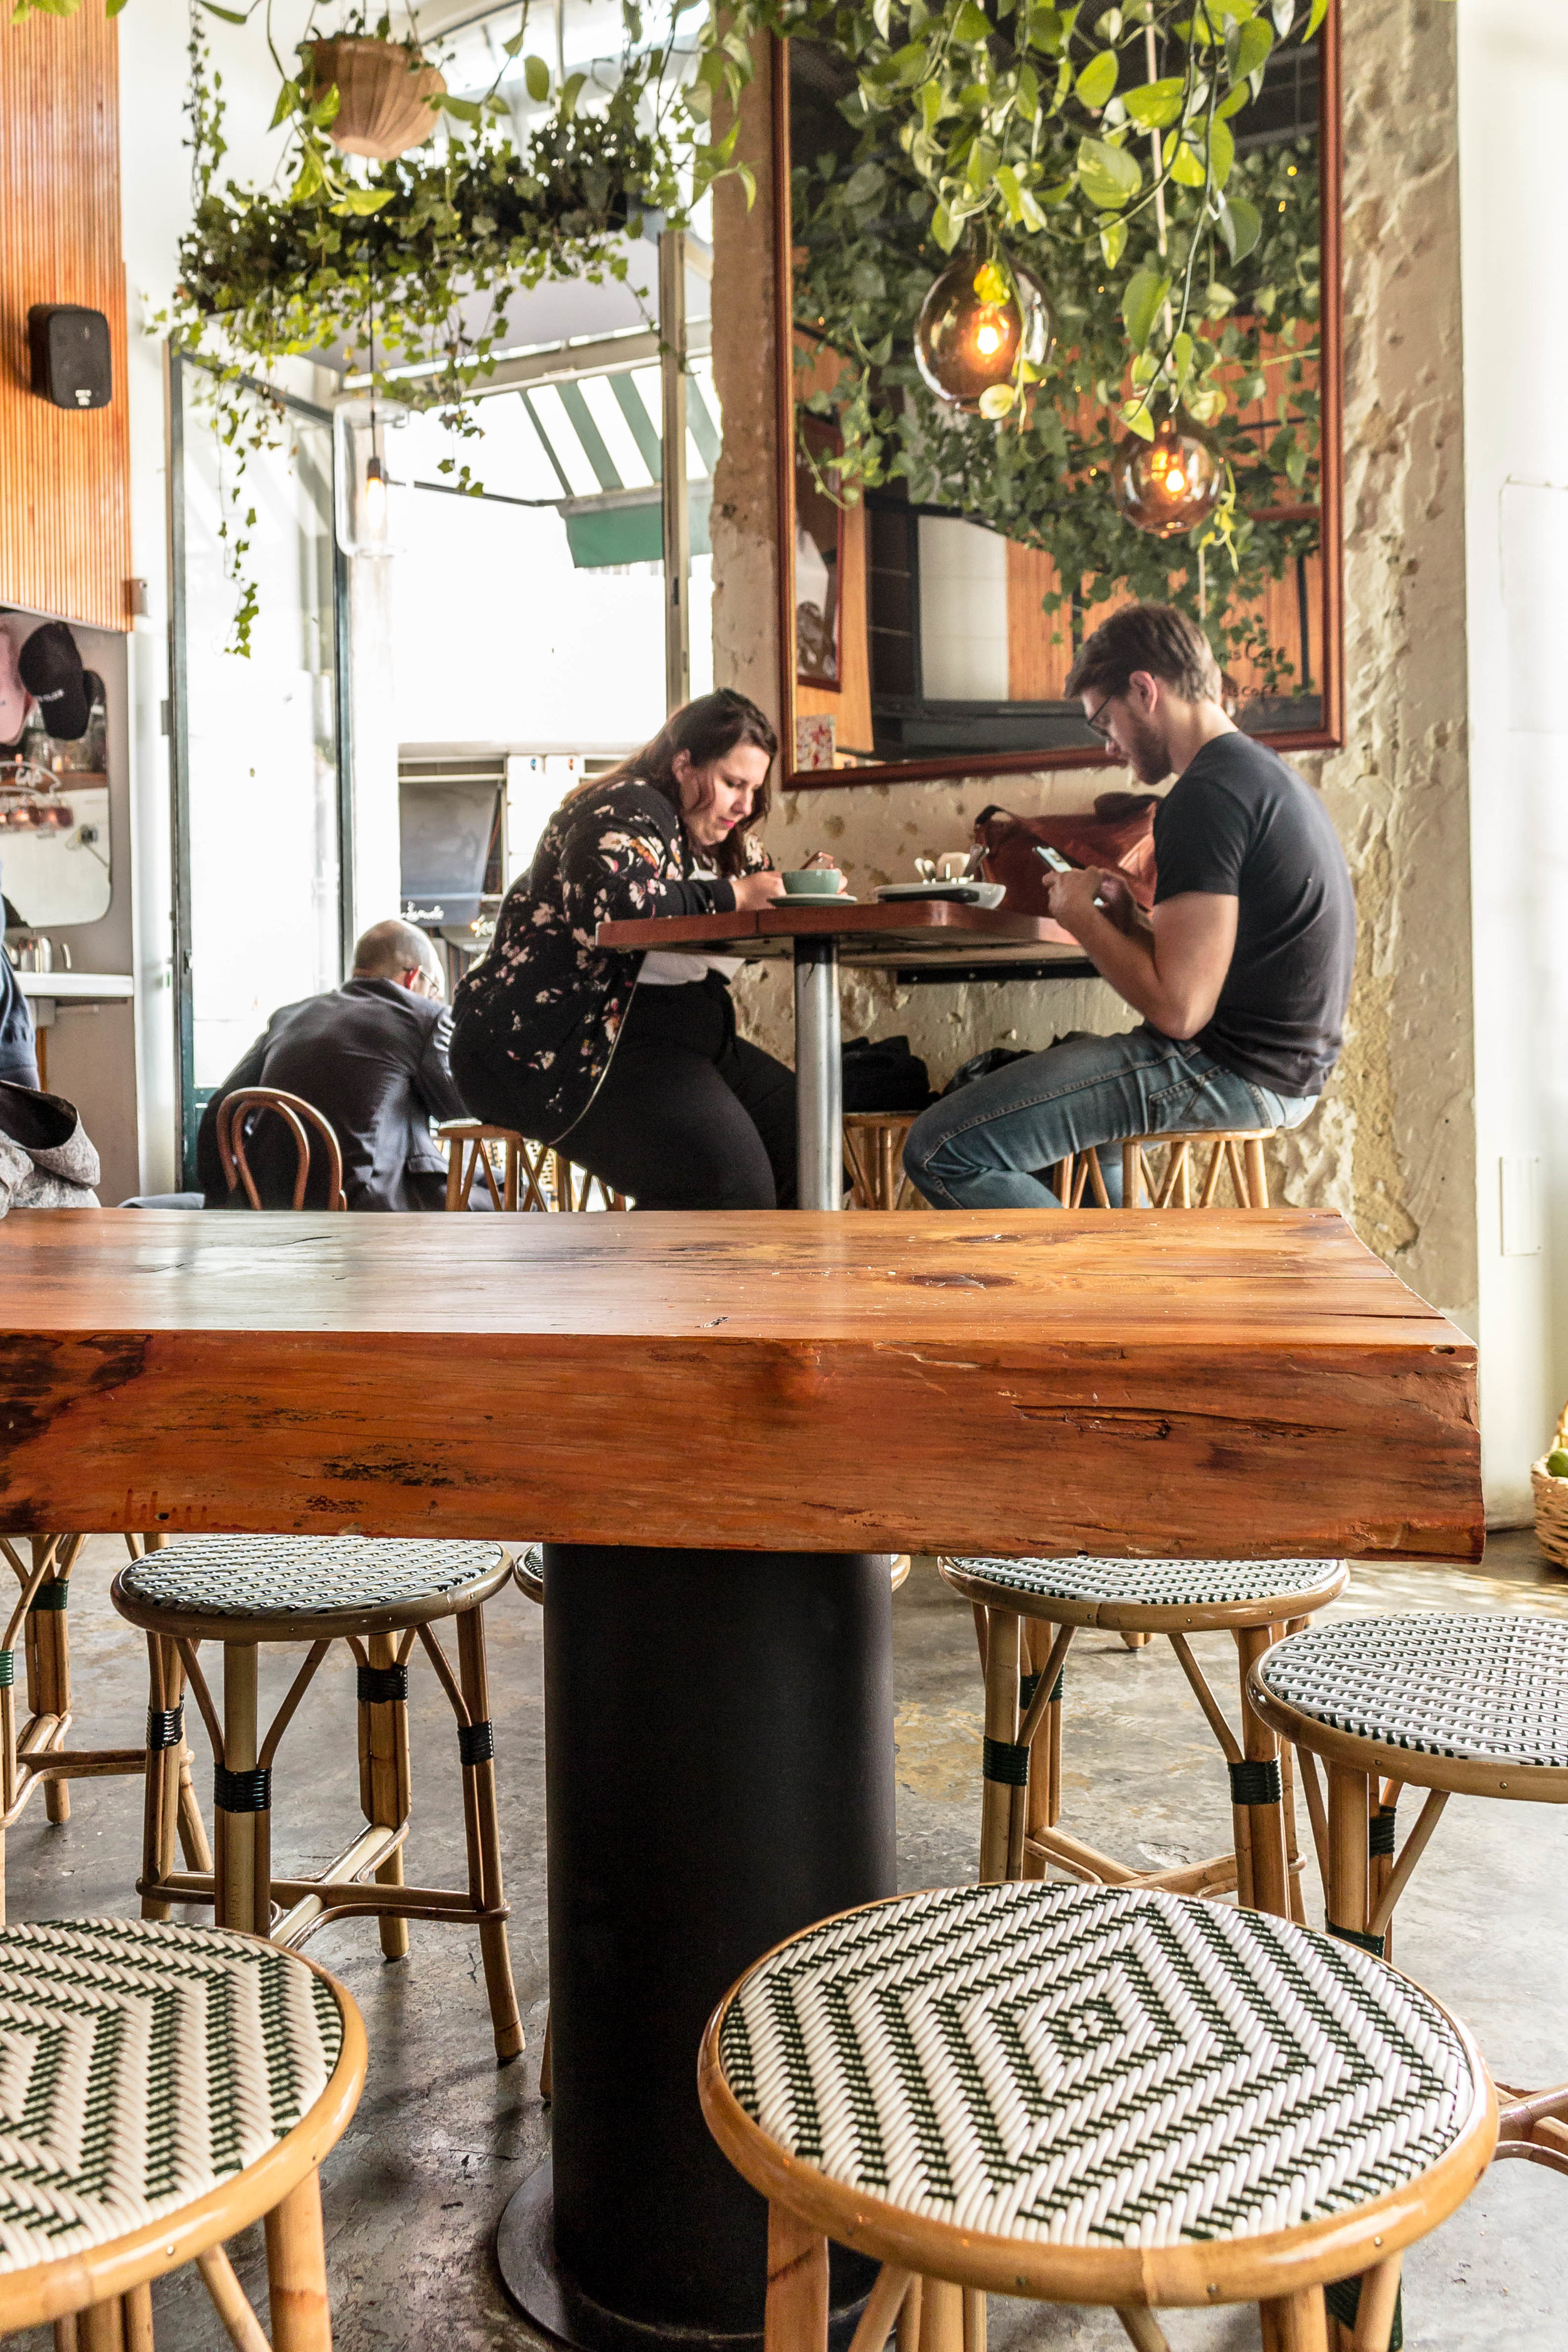 a cafe guide to lisbon, portugal: 5 of the best coffee shops + brunch spots in lisbon